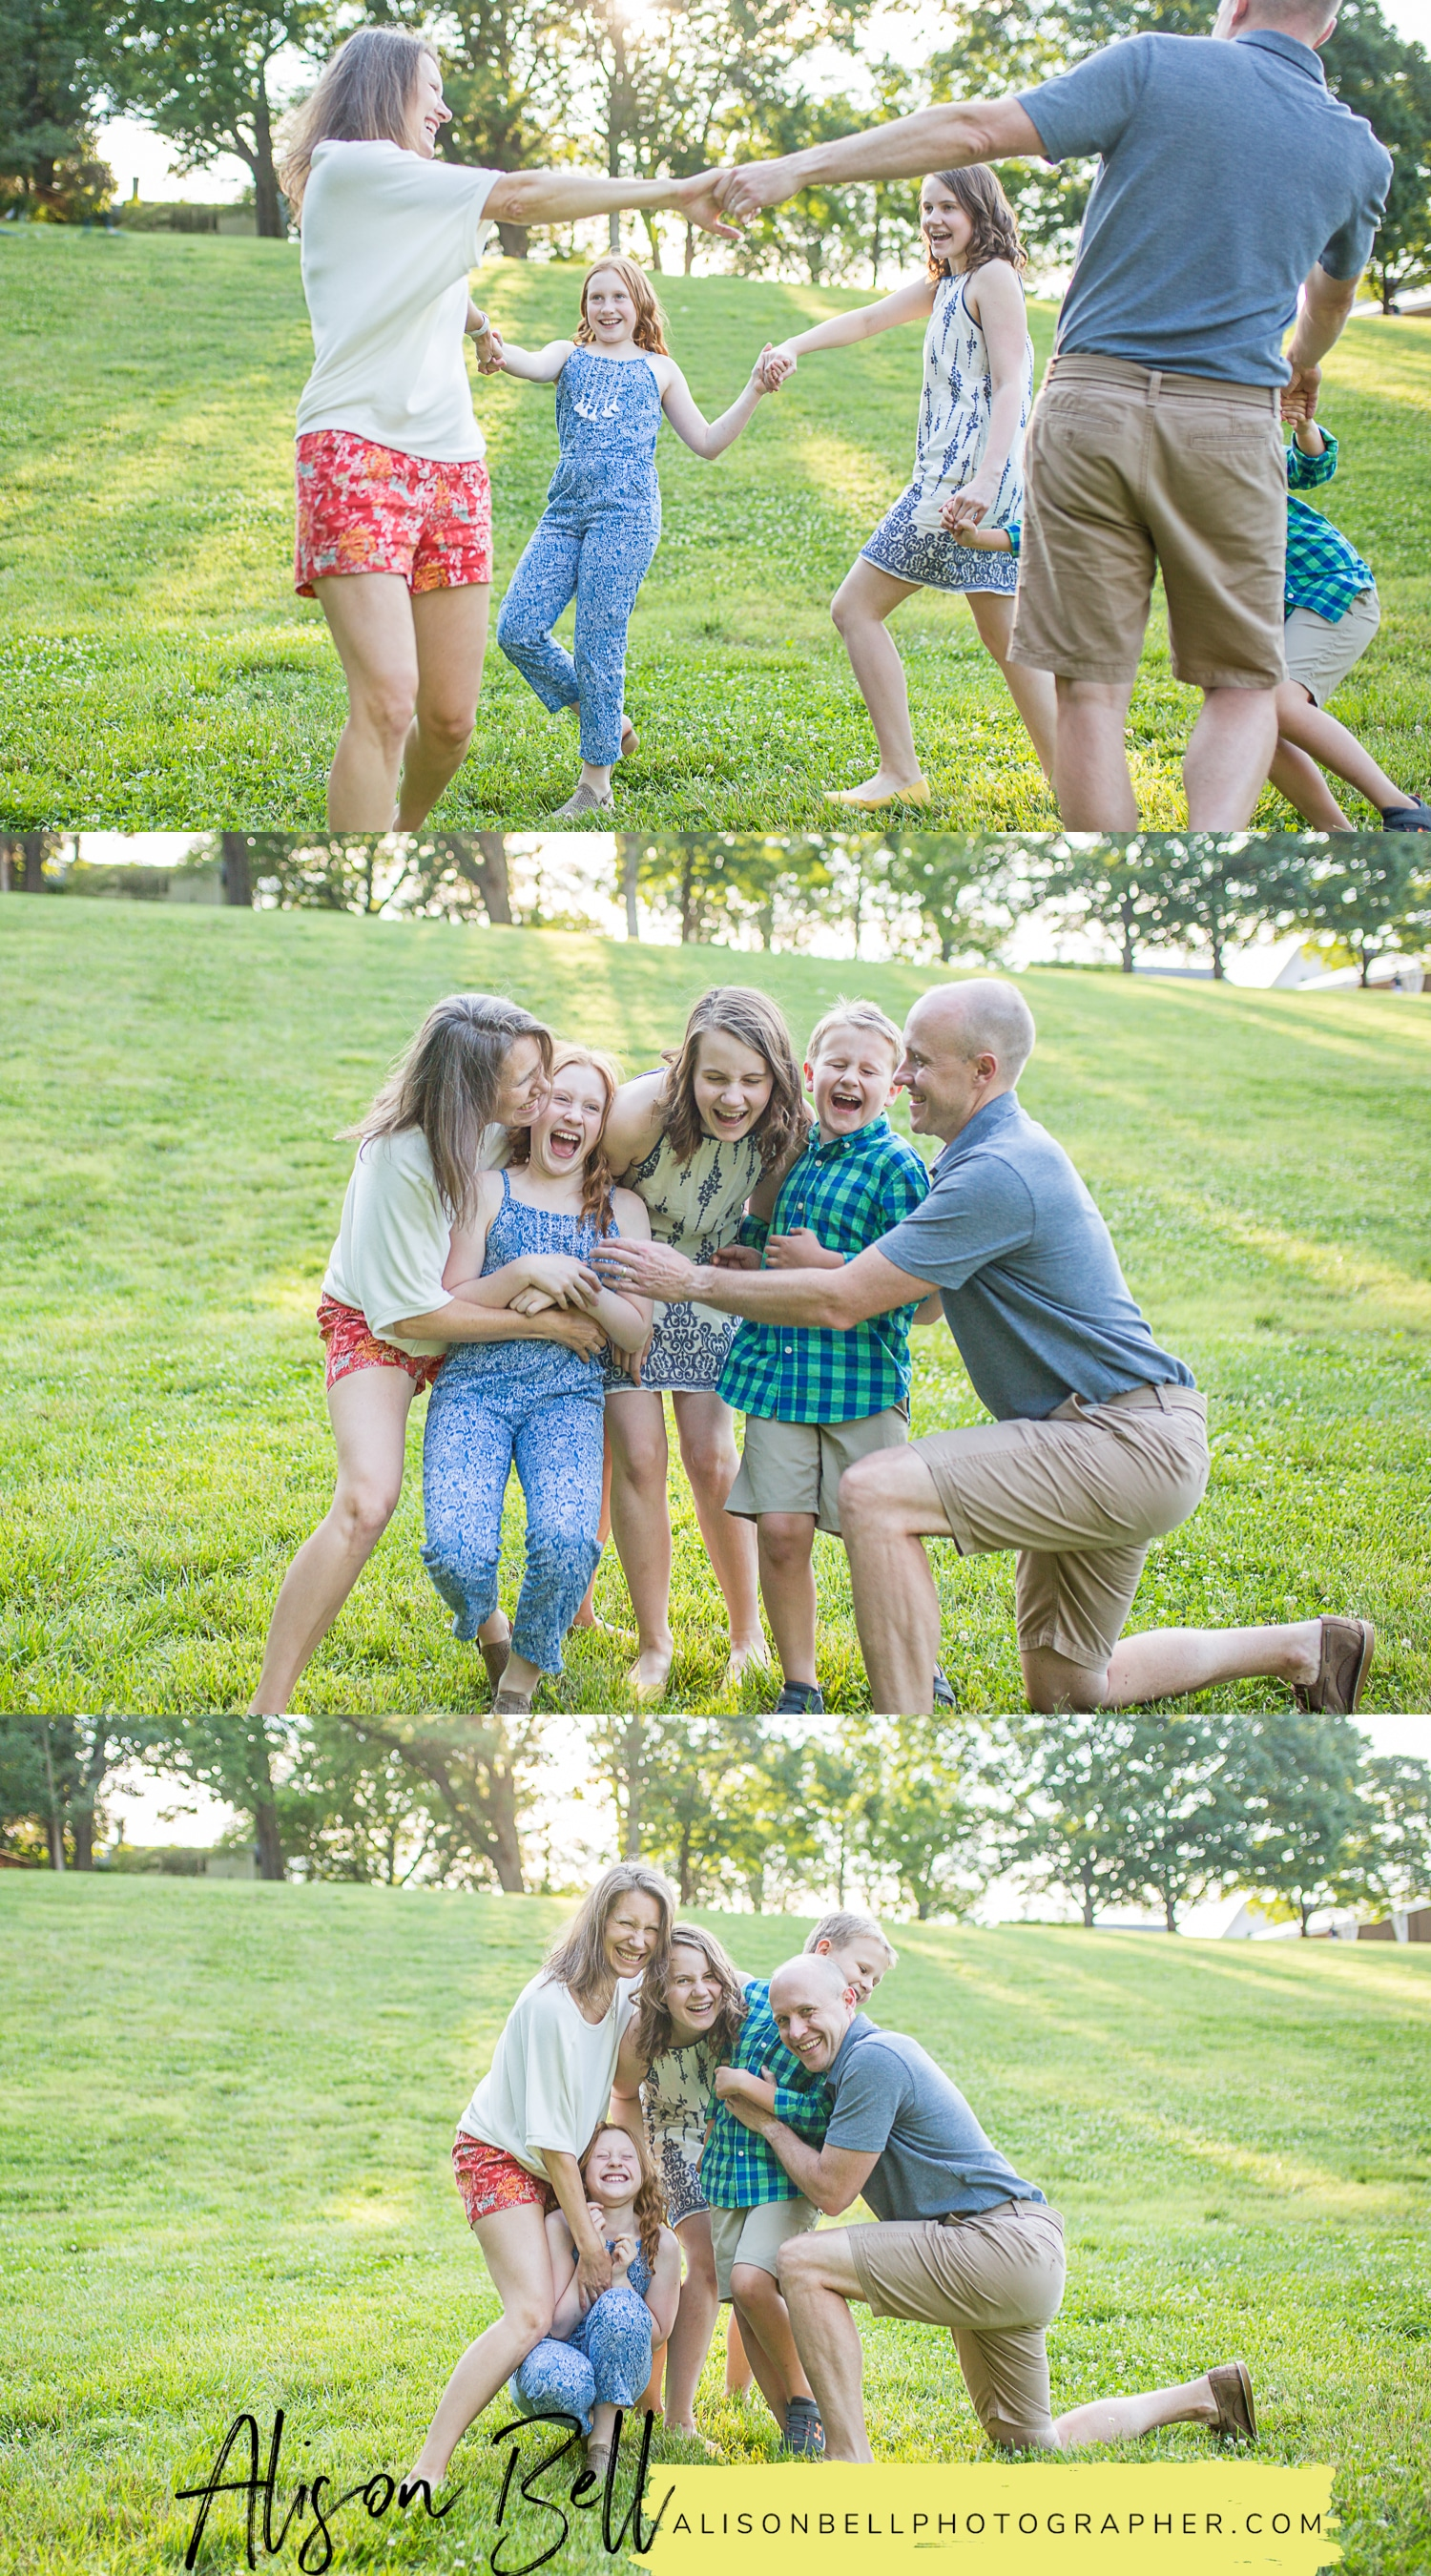 Family of 5 with older kids photo session at Wolf Trap National Park for the Performing Arts in Vienna, Virginia by Alison Bell Photographer, alisonbellphotographer.com